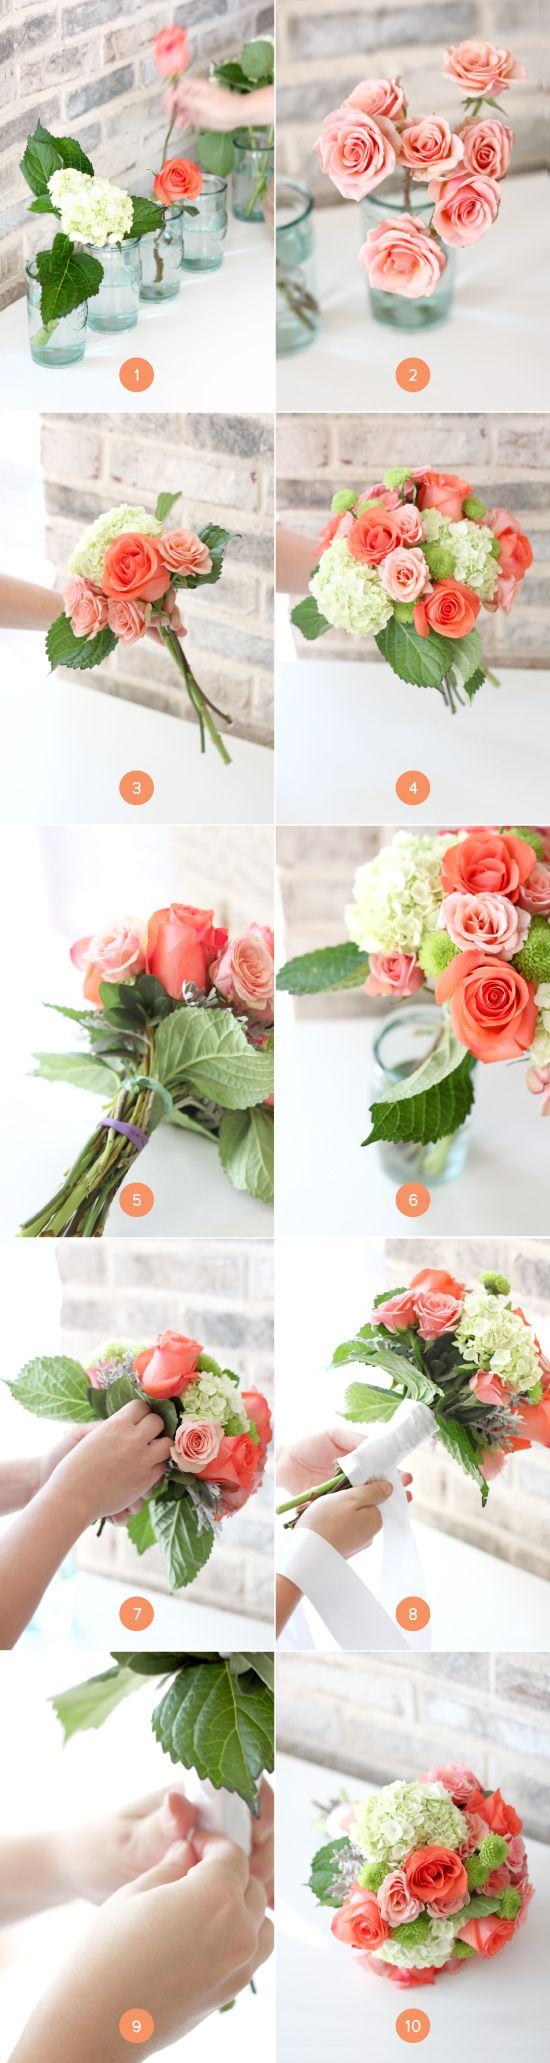 DIY Grocery Store Bridal Bouquet